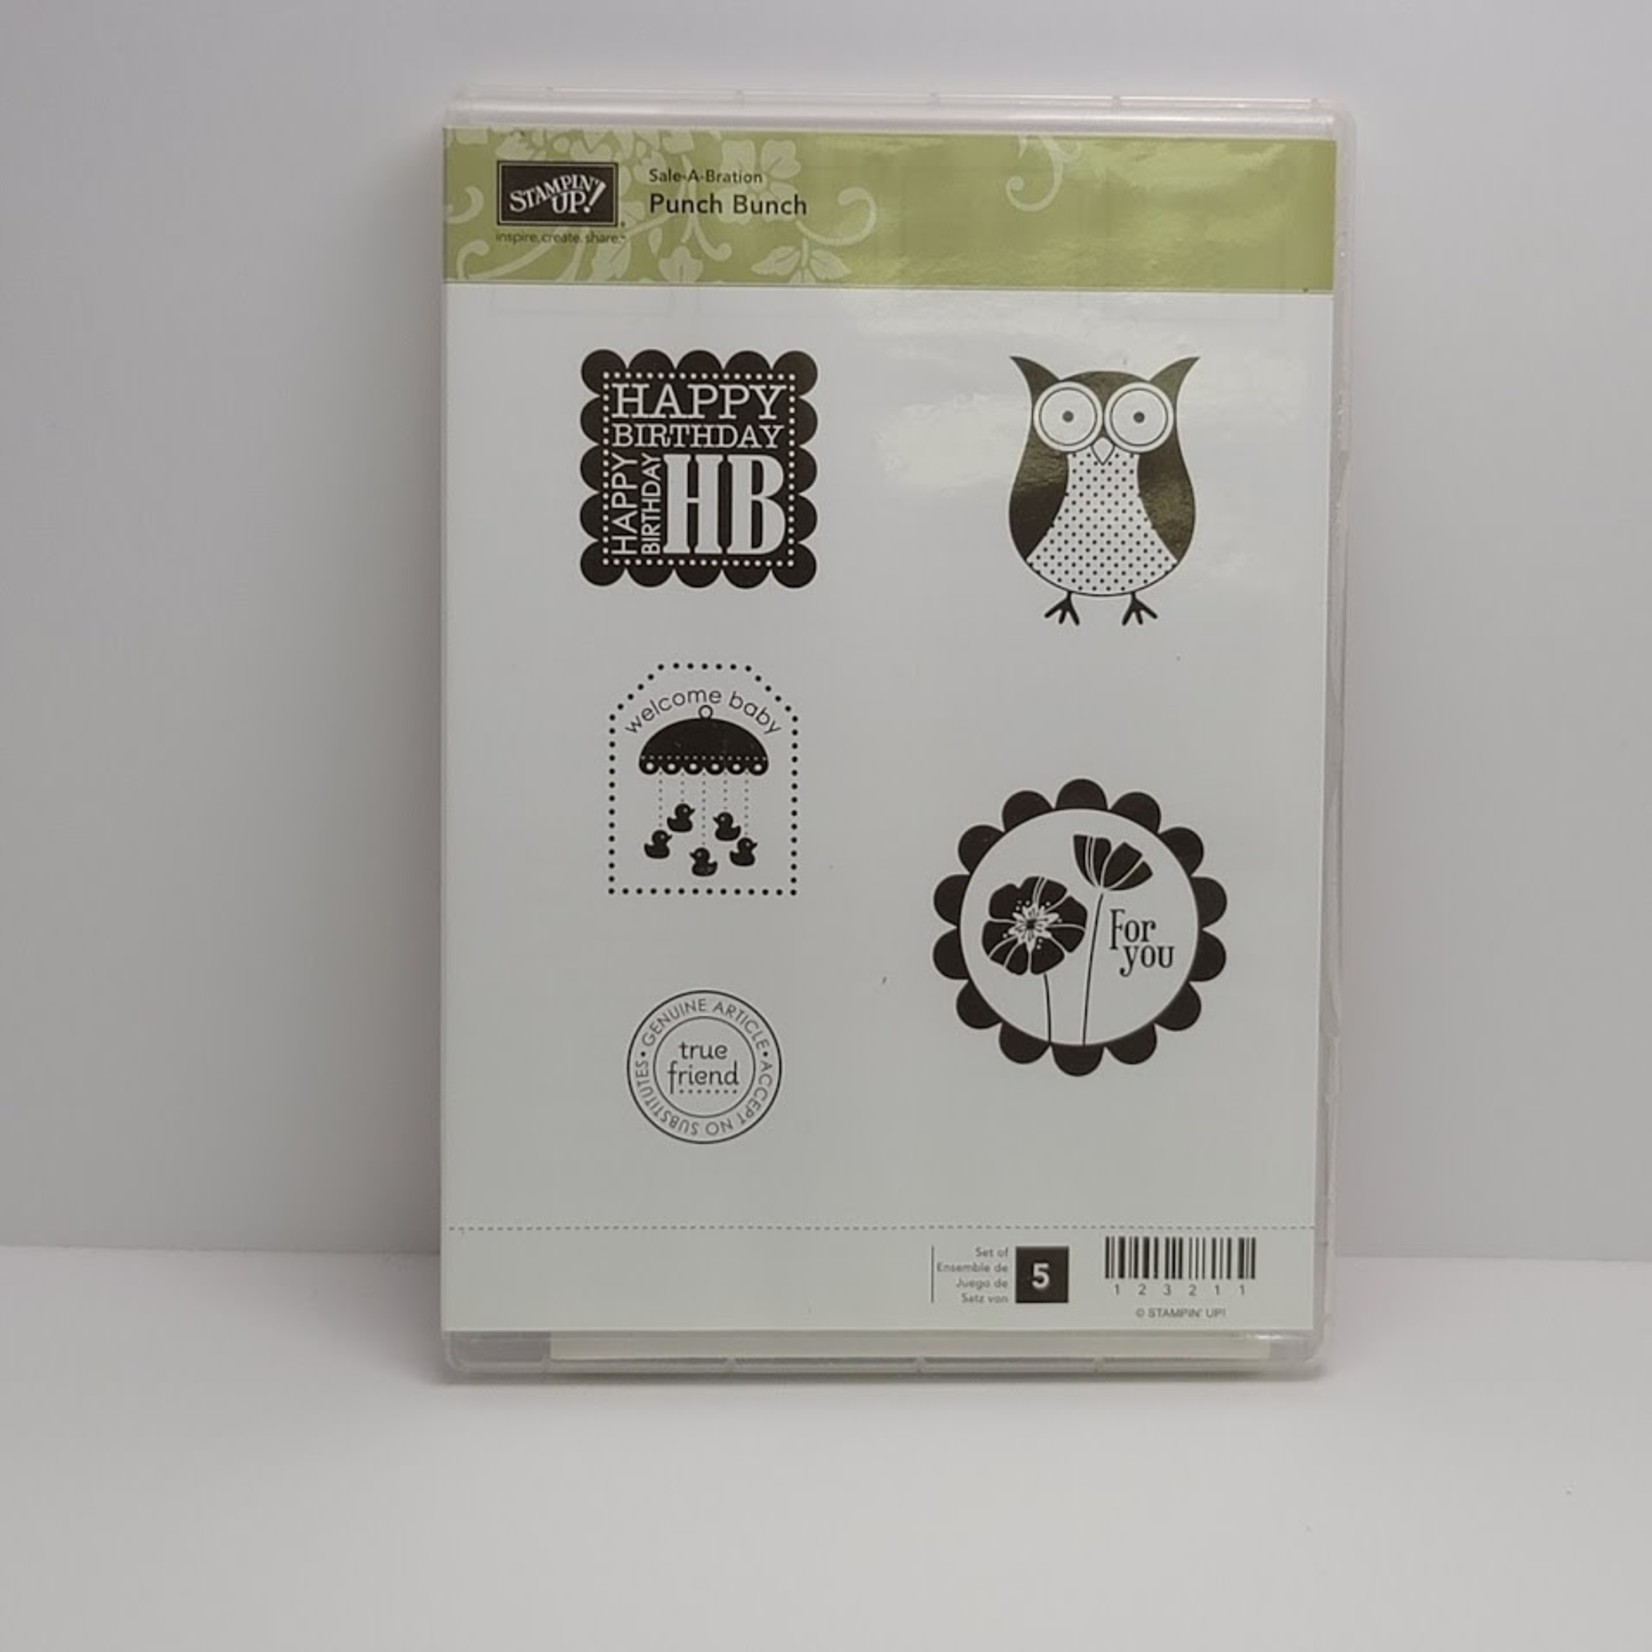 Stampin' Up Stampin' up - Cling Stamps - Punch Bunch